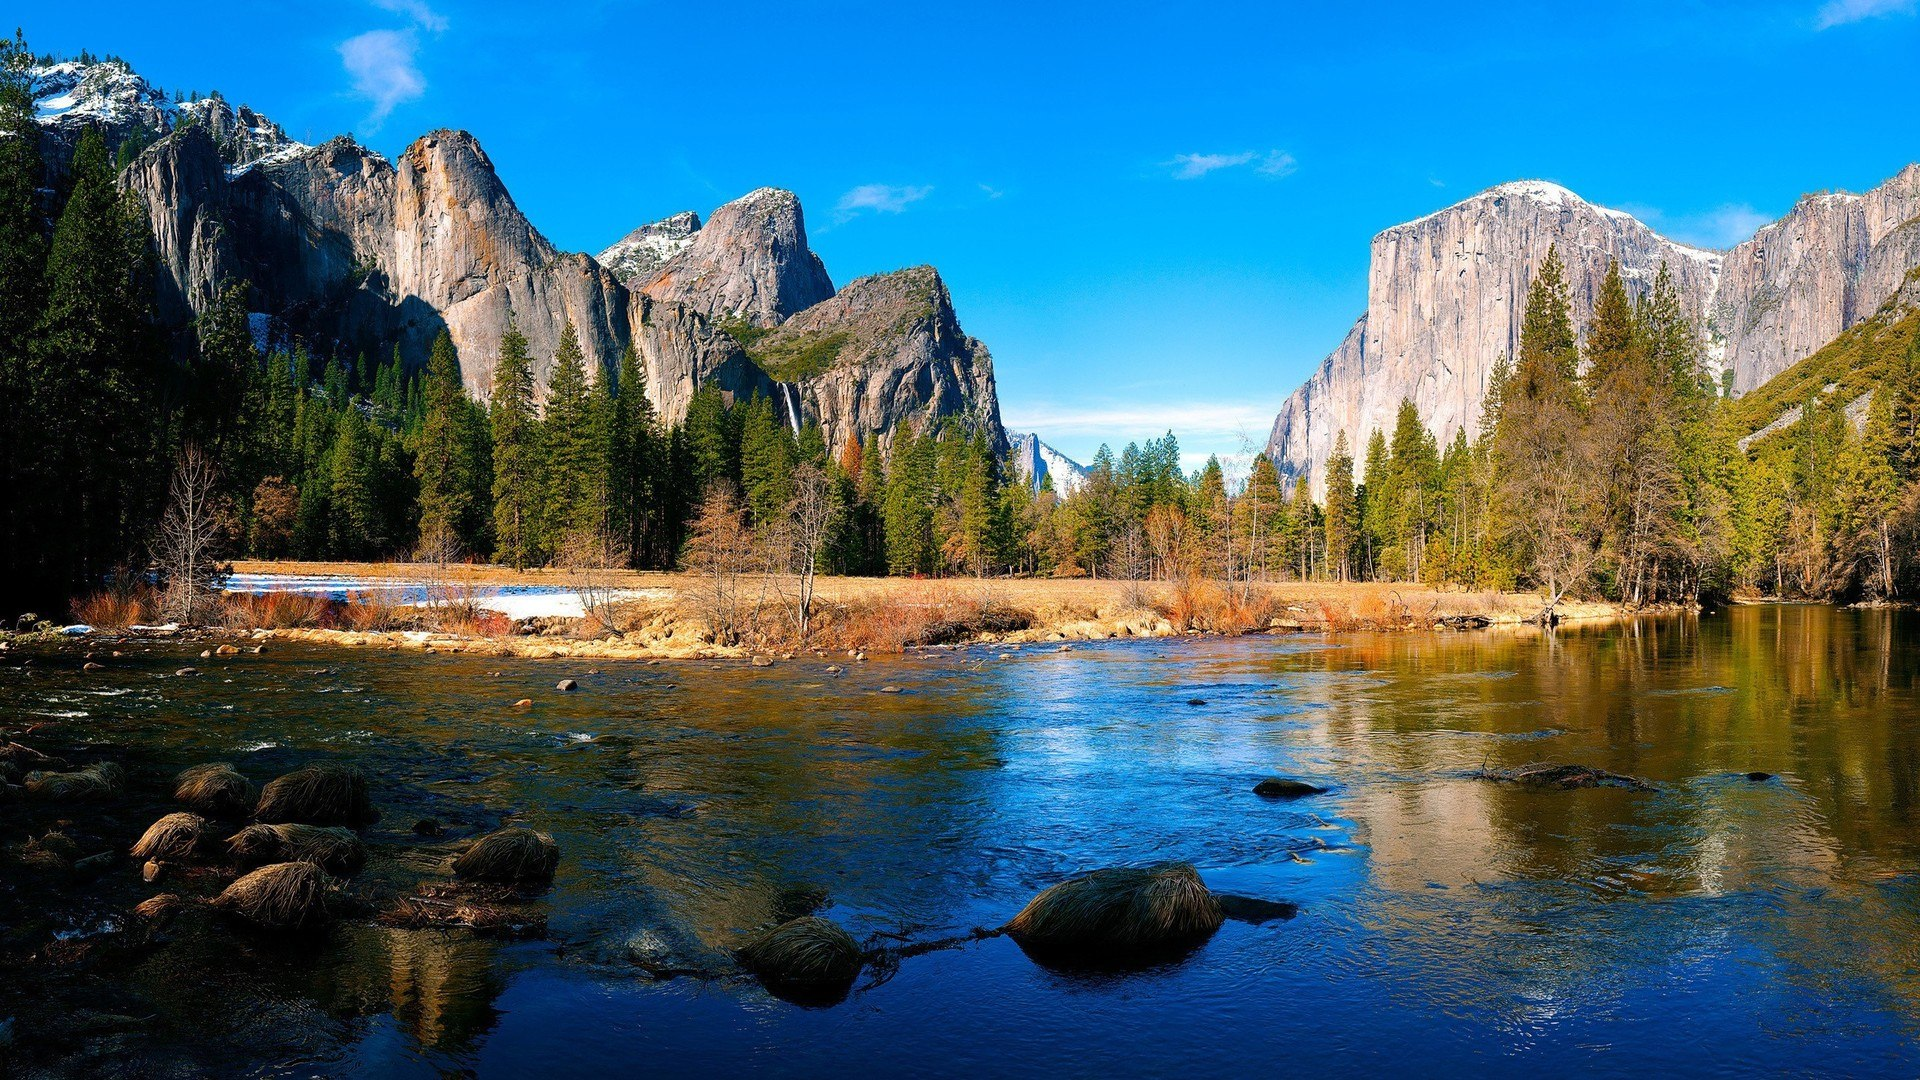 yosemite wallpapers high quality download free